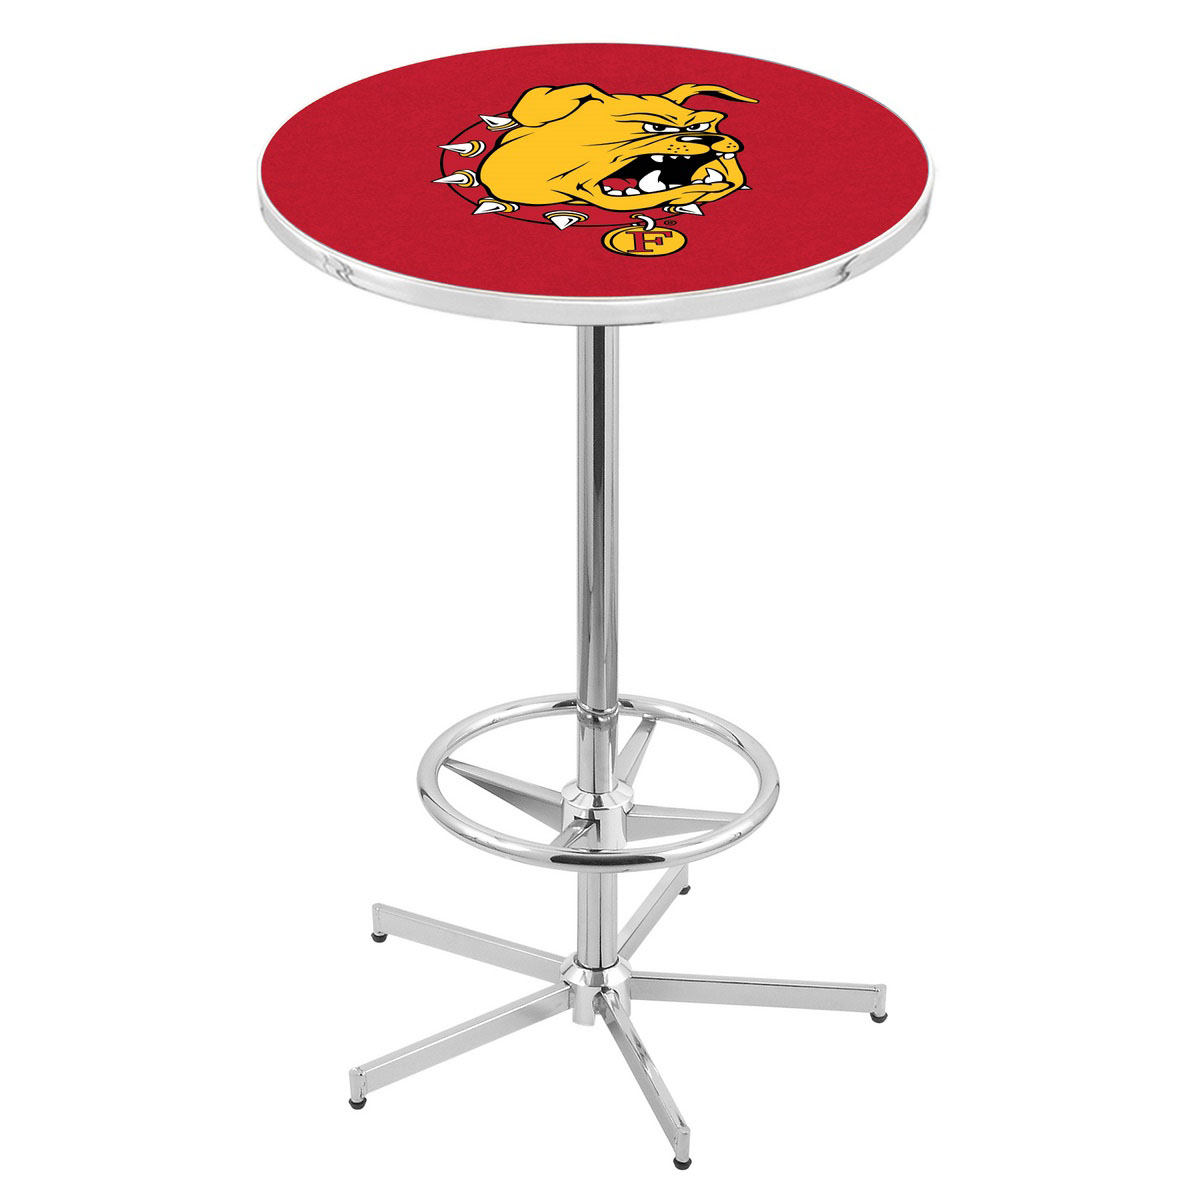 New Chrome Ferris State Pub Table Product Photo